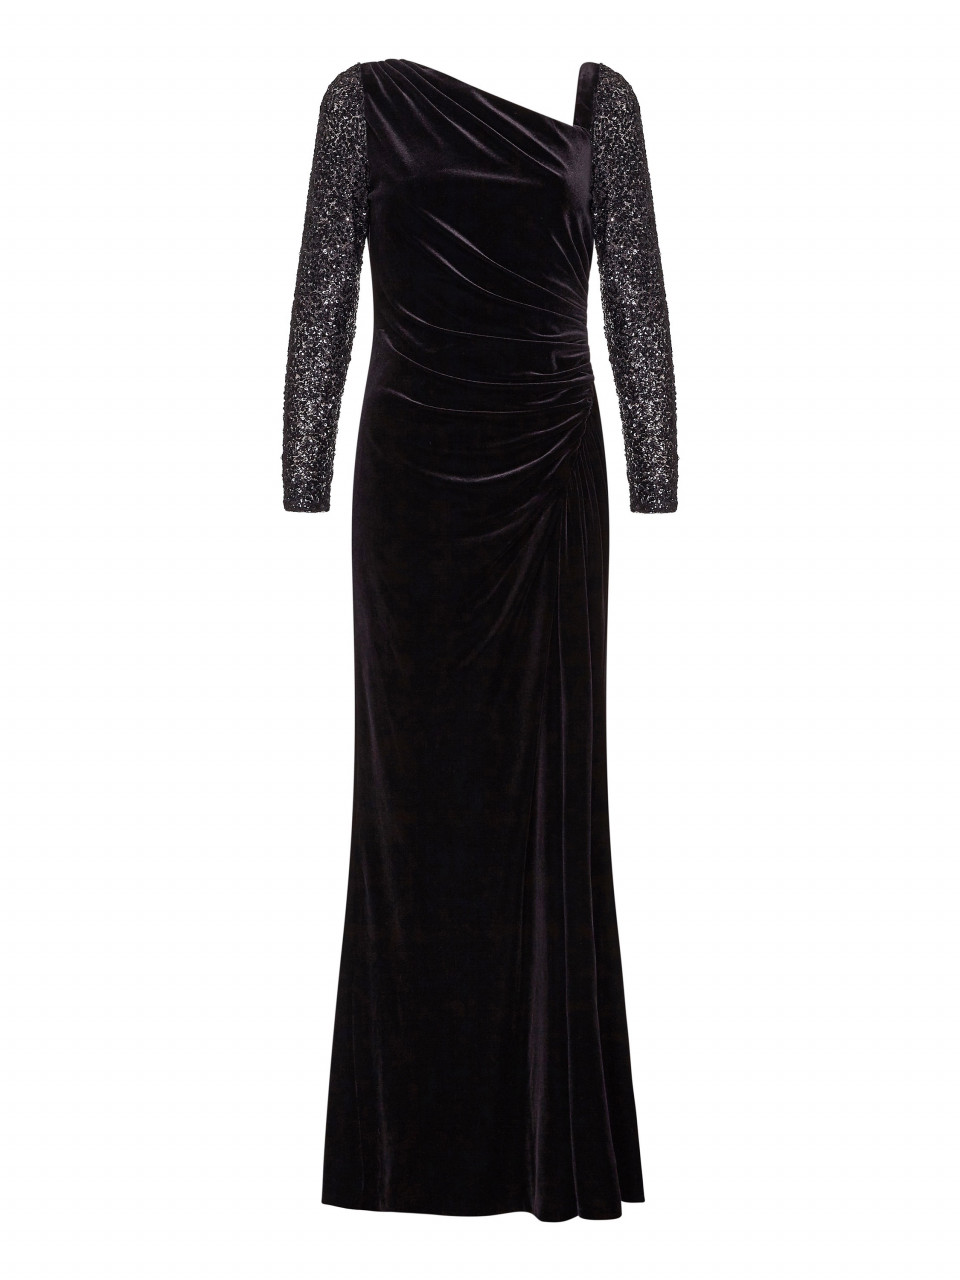 Velvet and sequin gown